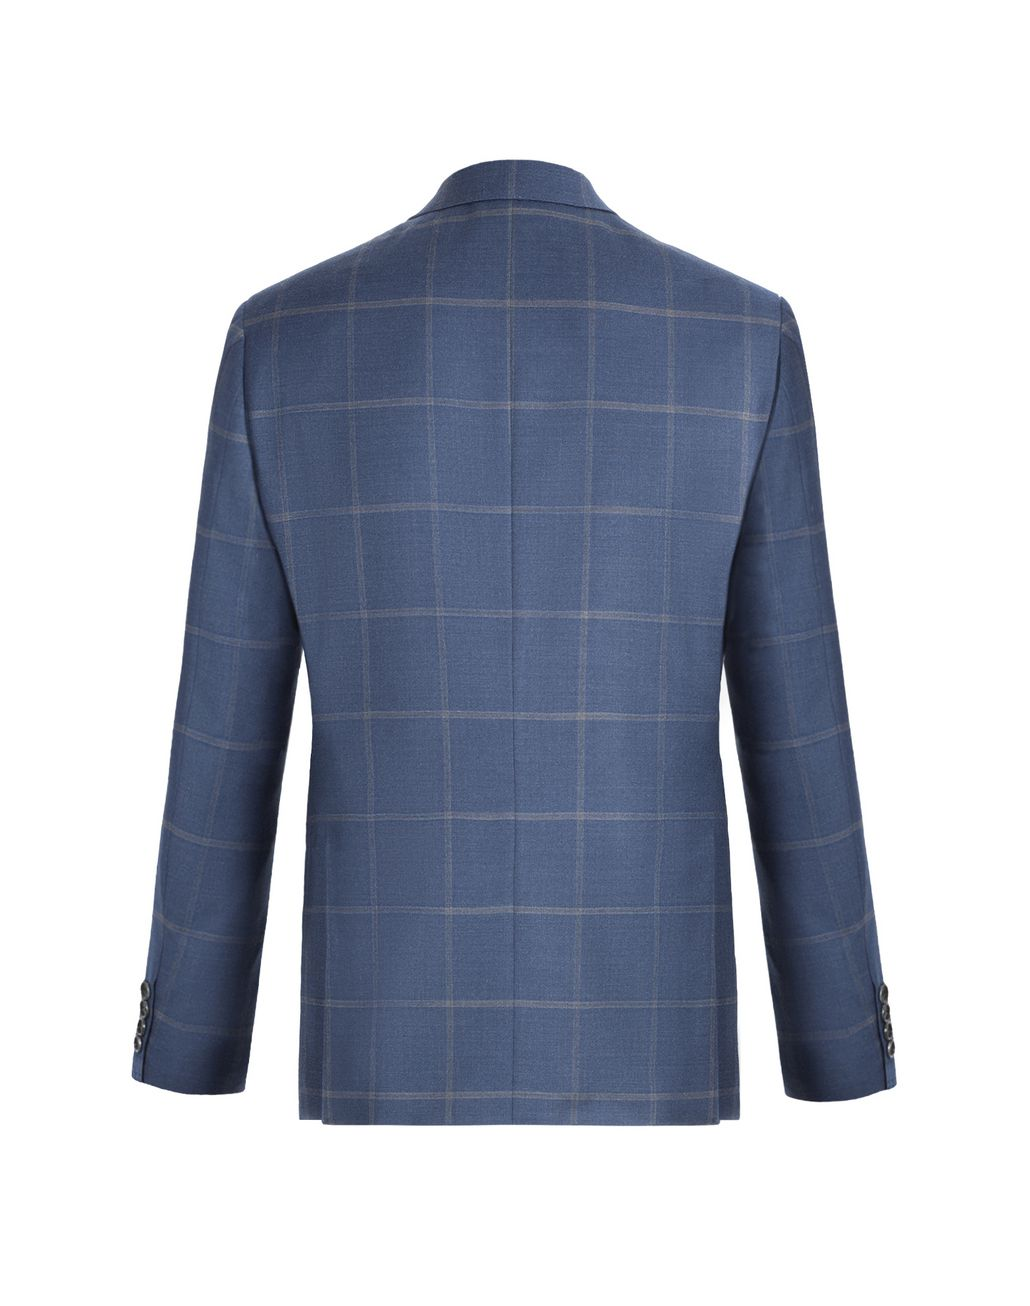 BRIONI Blue and Grey Overcheck Ravello Jacket Jackets Man d